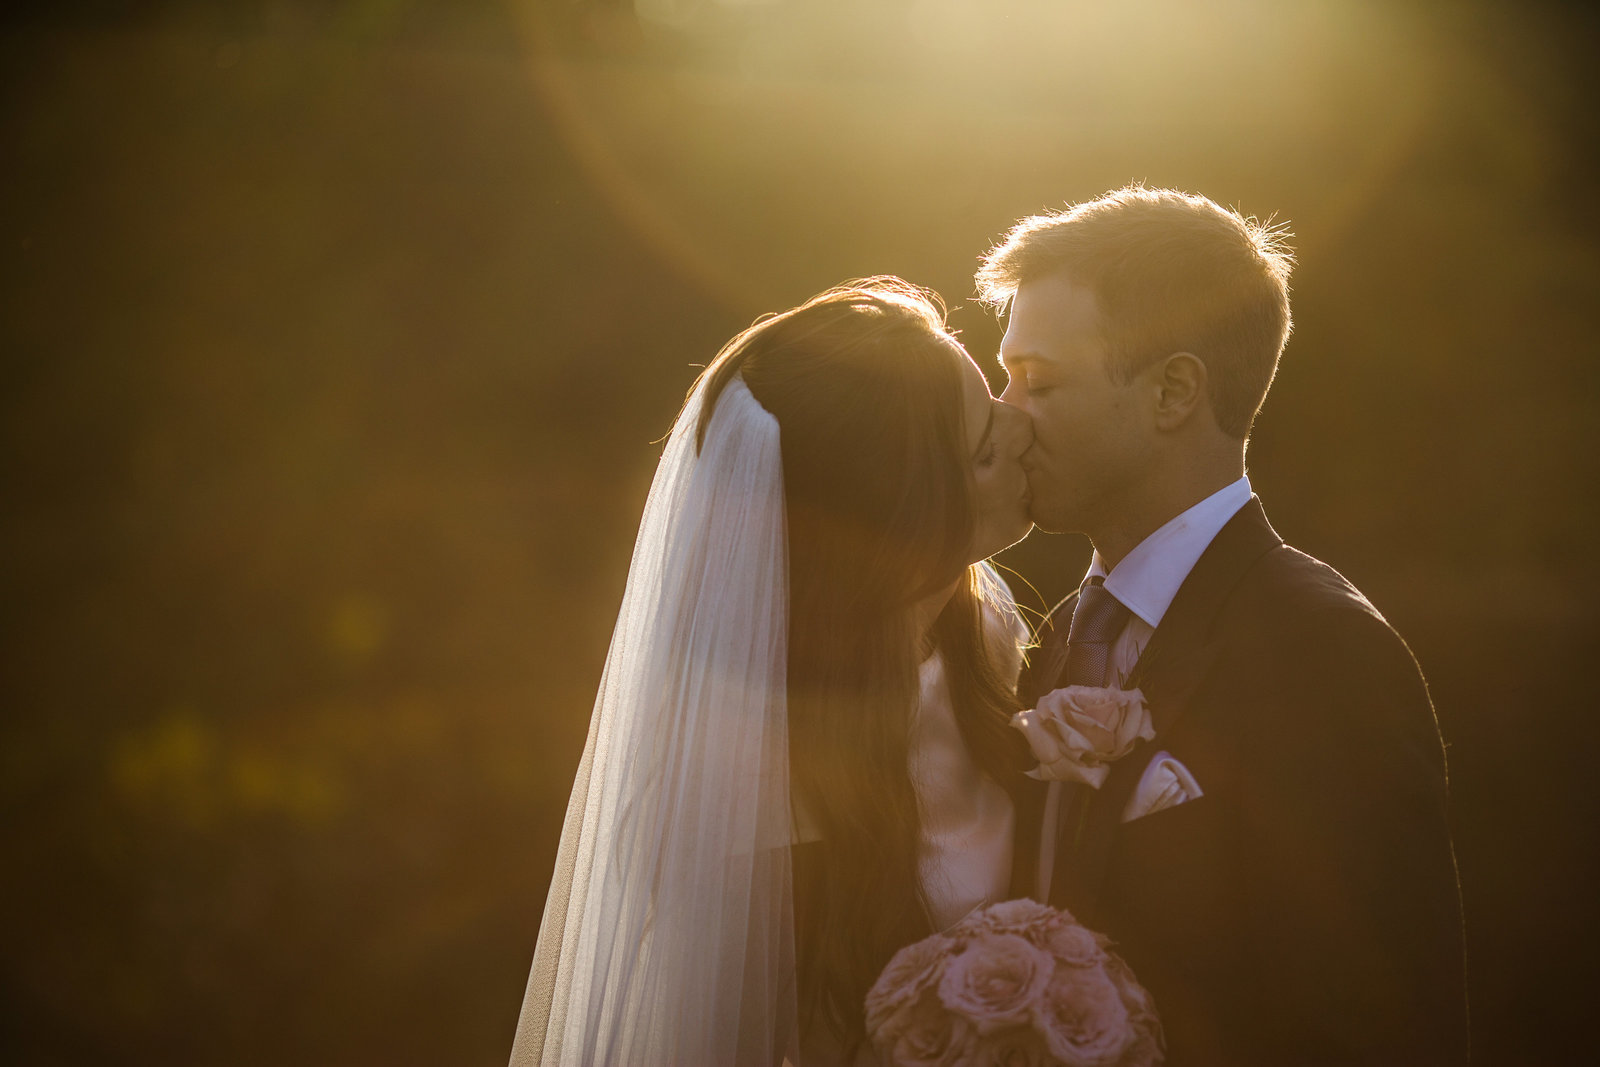 Beautifully lit bride and groom and sunkissed with sunflare as they share a kiss for this couple portrait during golden hour at Pangdean Barn in East sussex